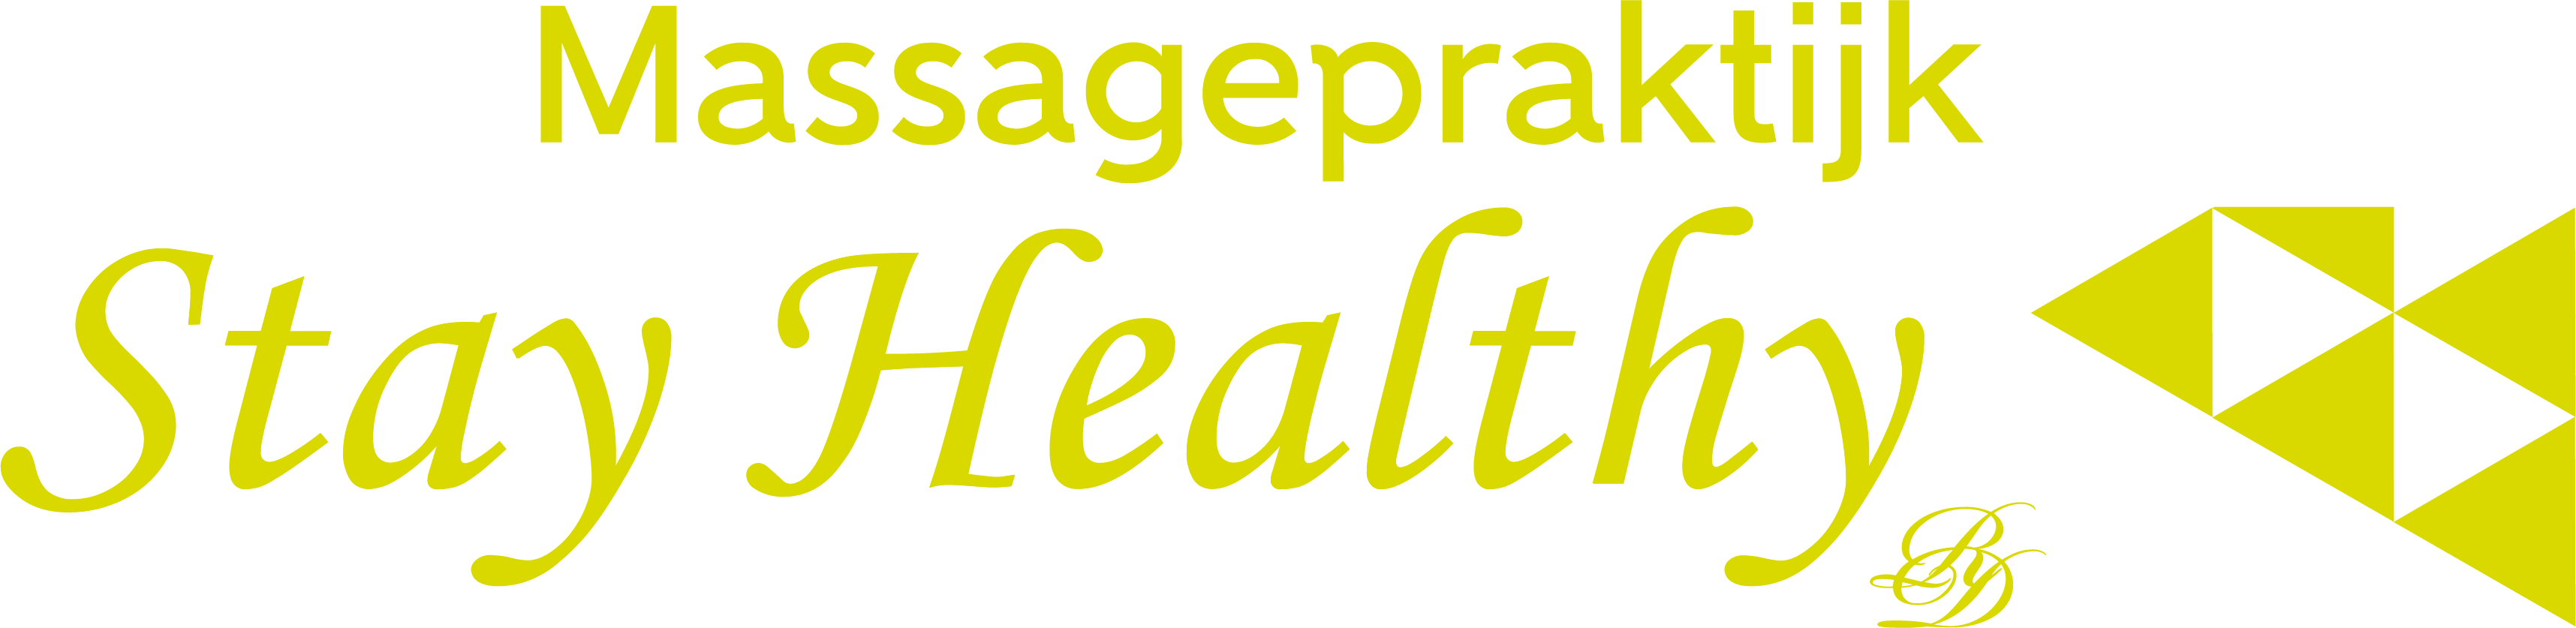 Massagepraktijk Stay Healthy